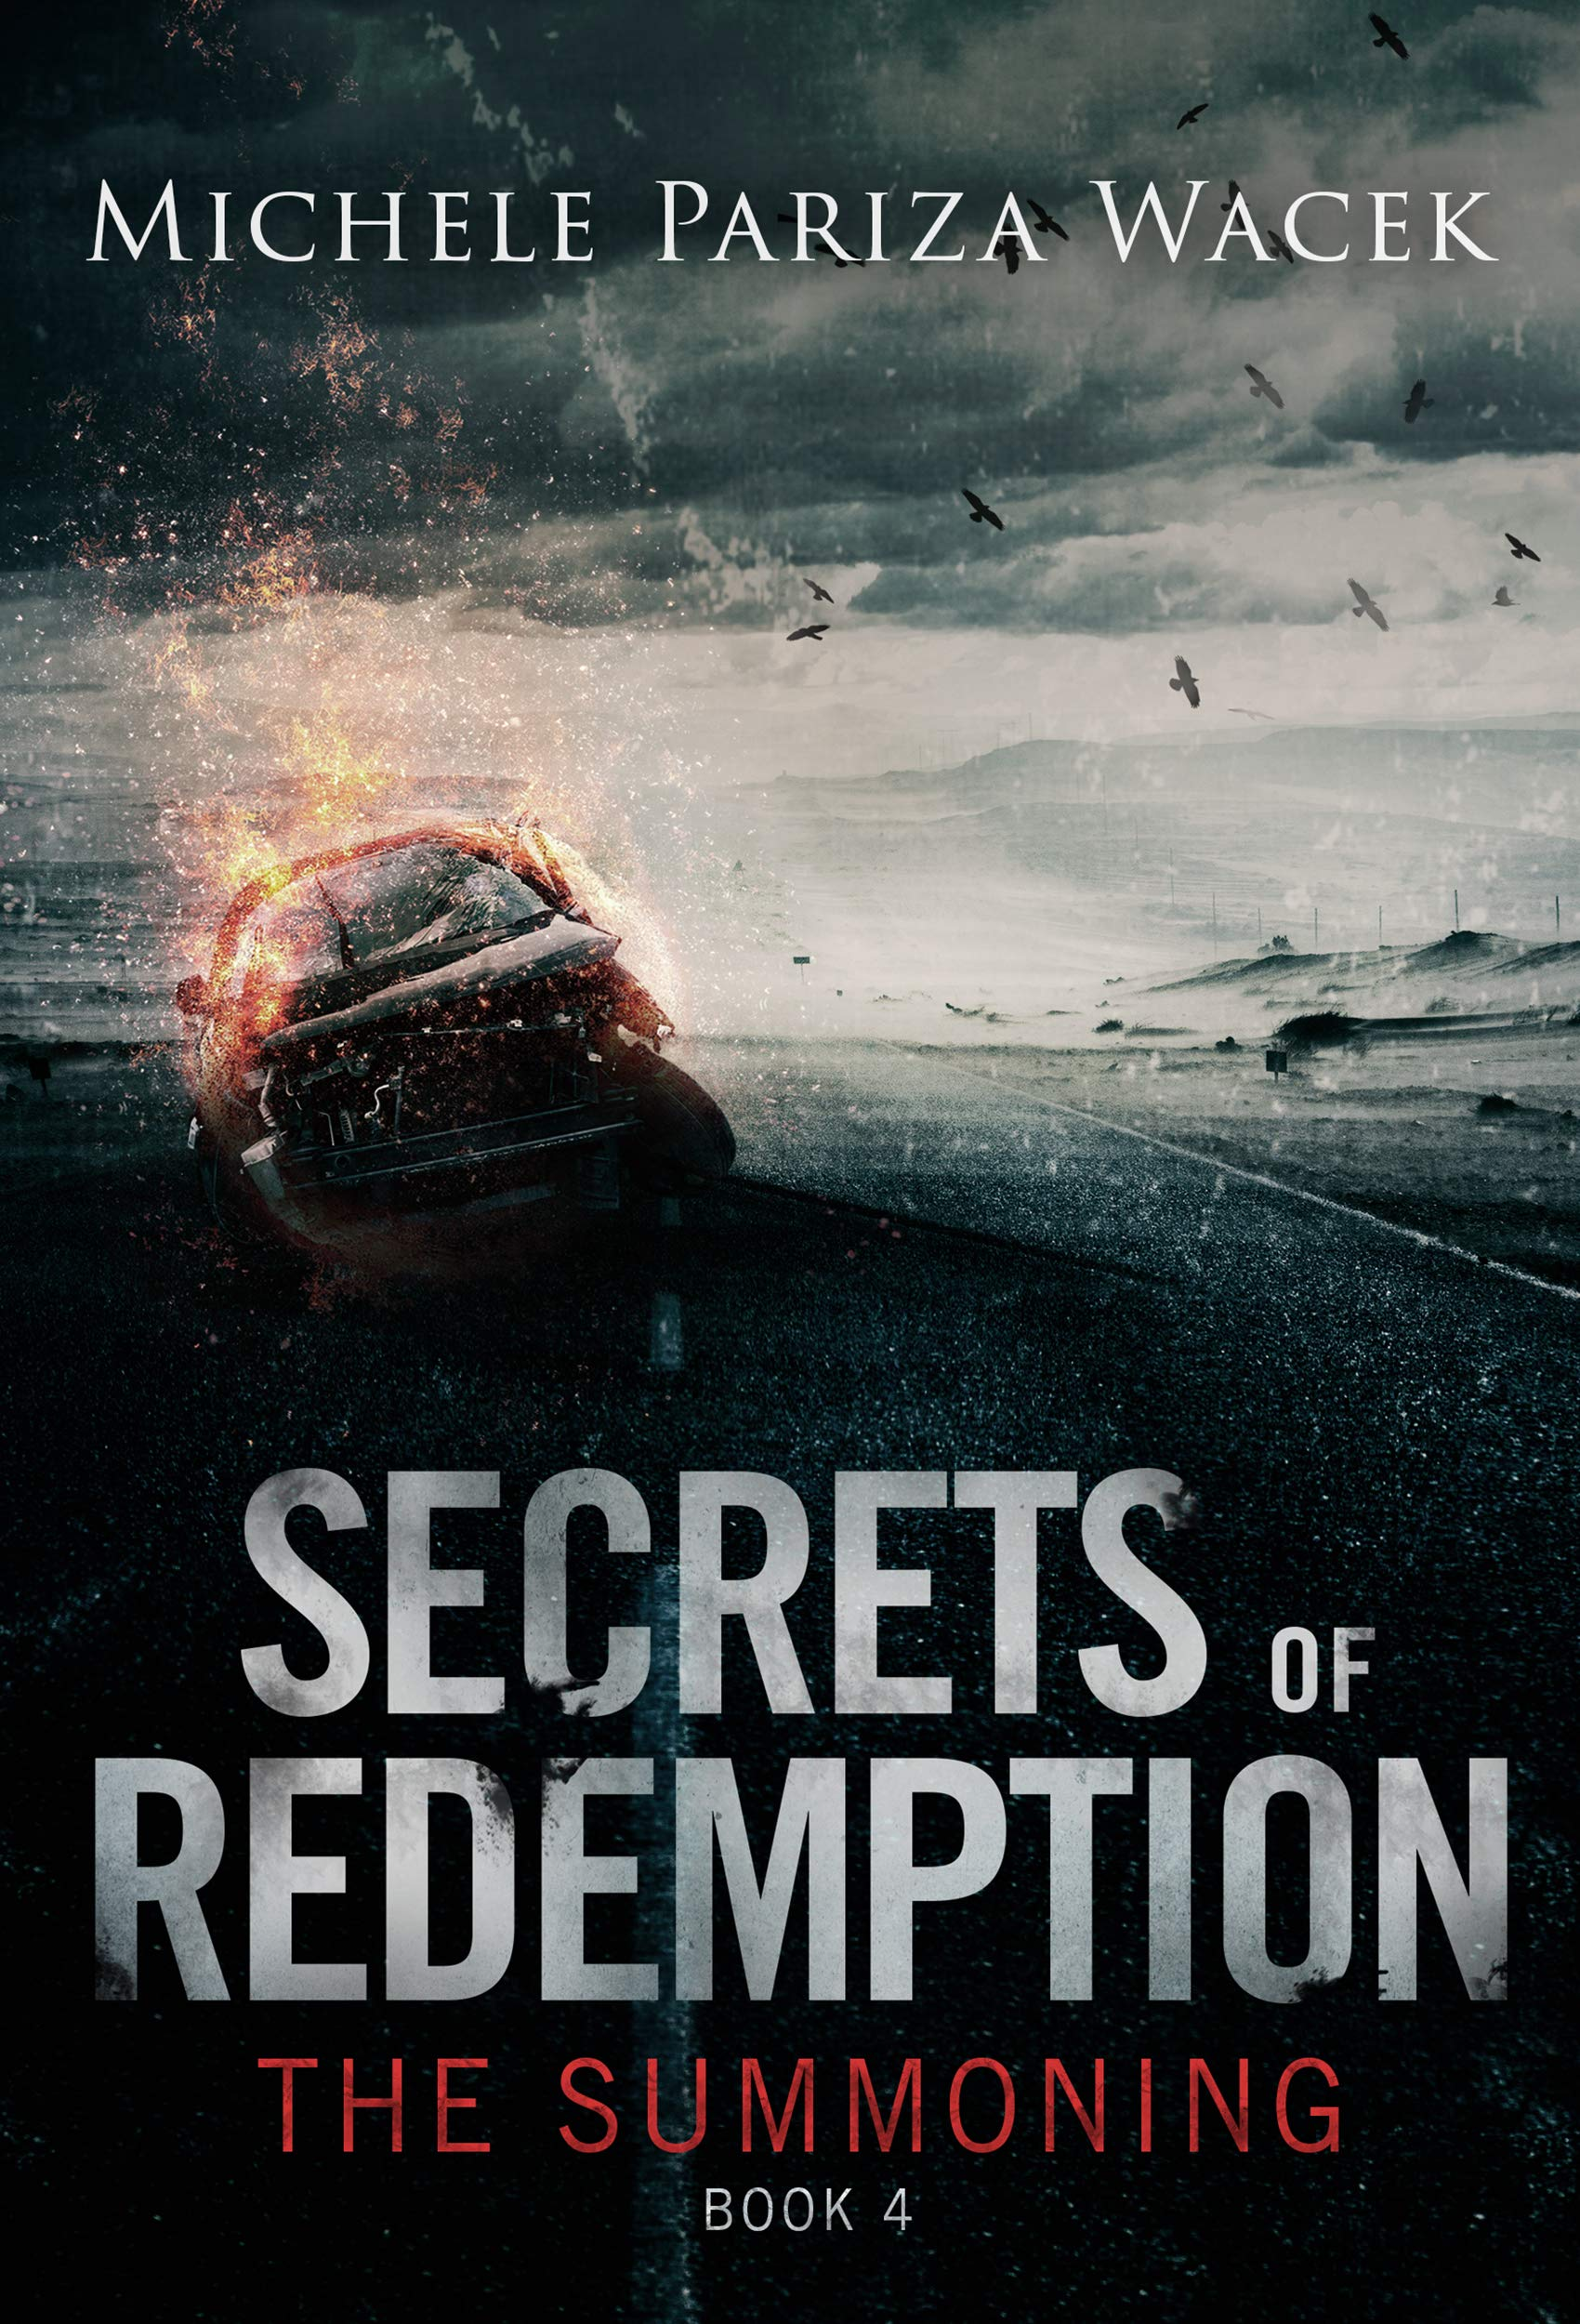 The Summoning (Secrets of Redemption #4)